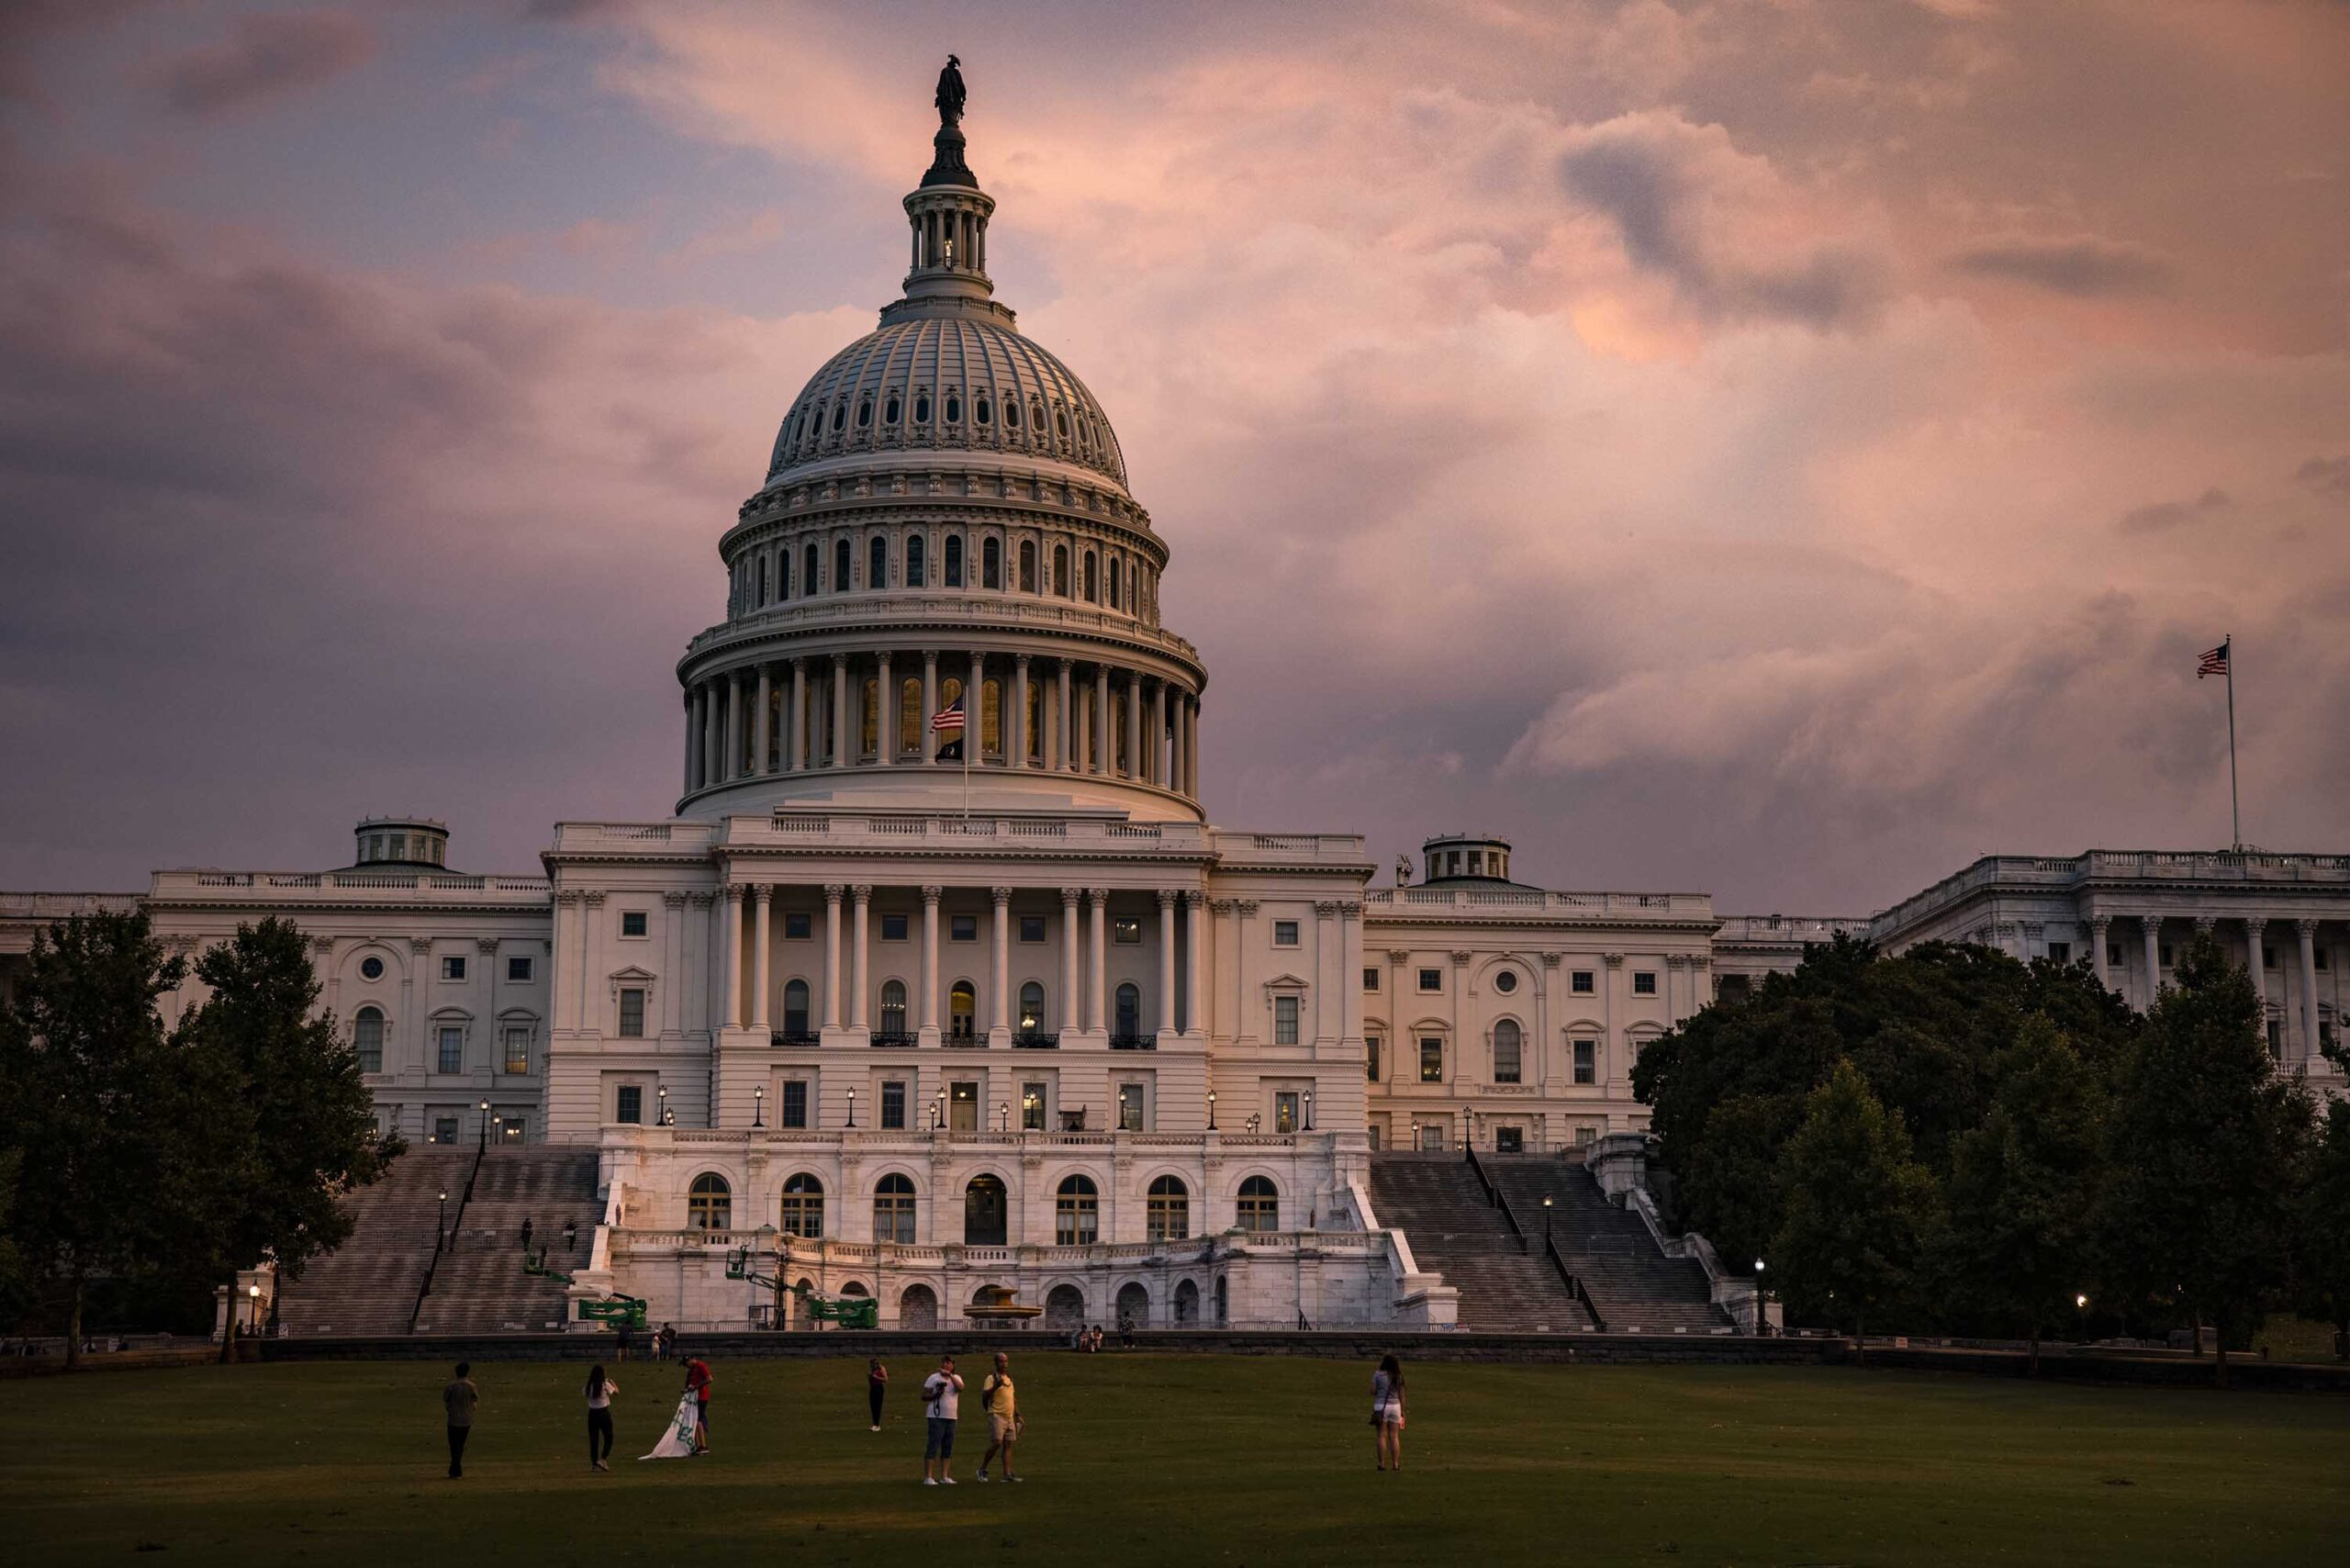 <i>Samuel Corum/Getty Images</i><br/>The U.S. Capitol Building is seen as the sun sets on July 26